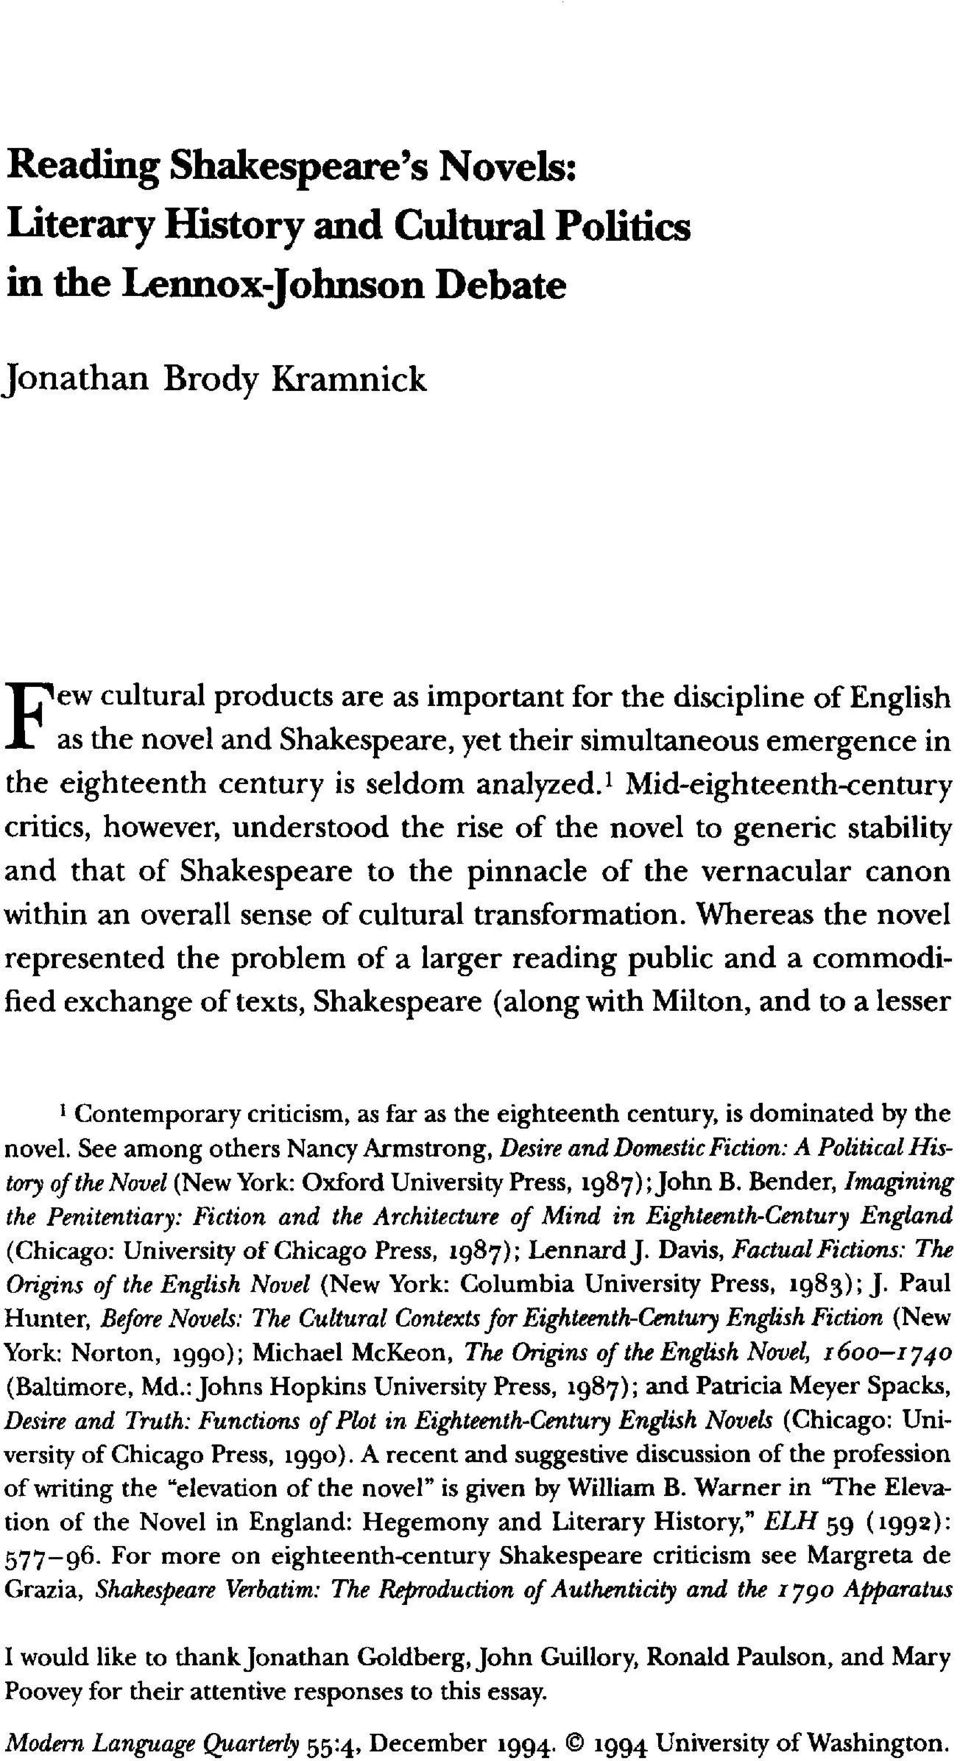 the shakespearean canon essay The shakespeare authorship question and seneca, all of whom are quoted and echoed in the shakespearean canon on 14 april 2007 the shakespeare authorship.